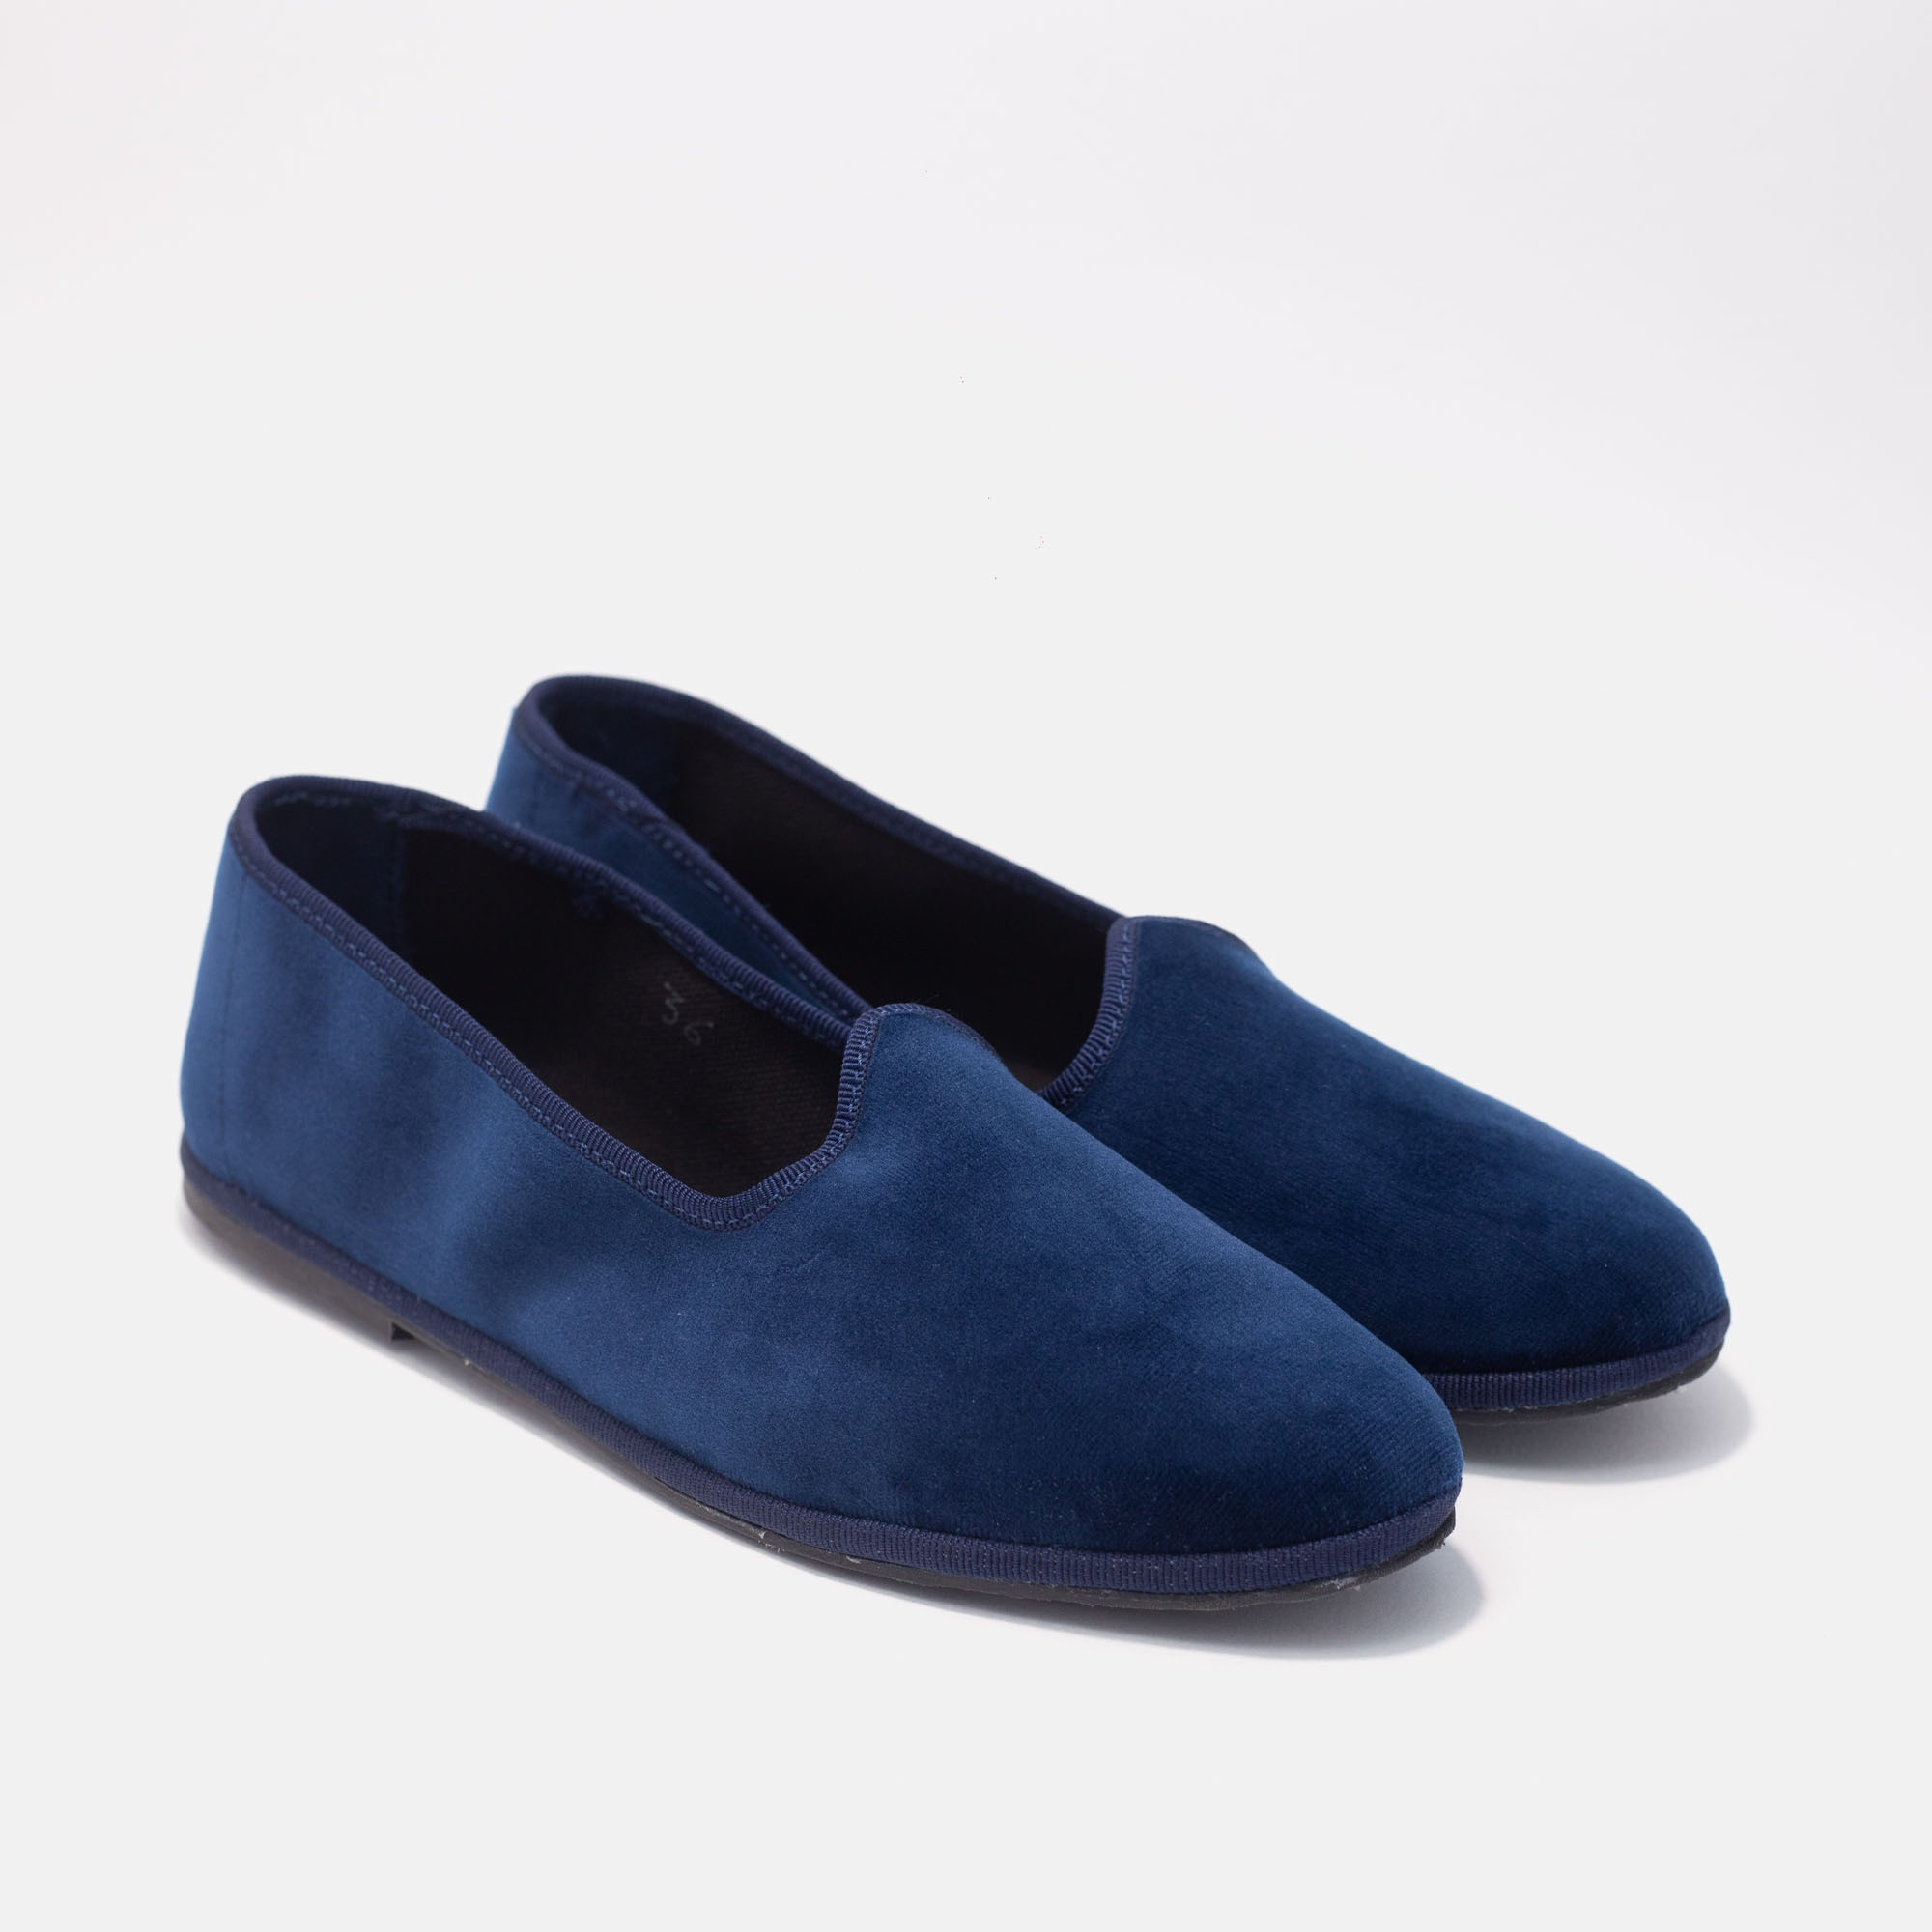 The COSY shoes - blu navy